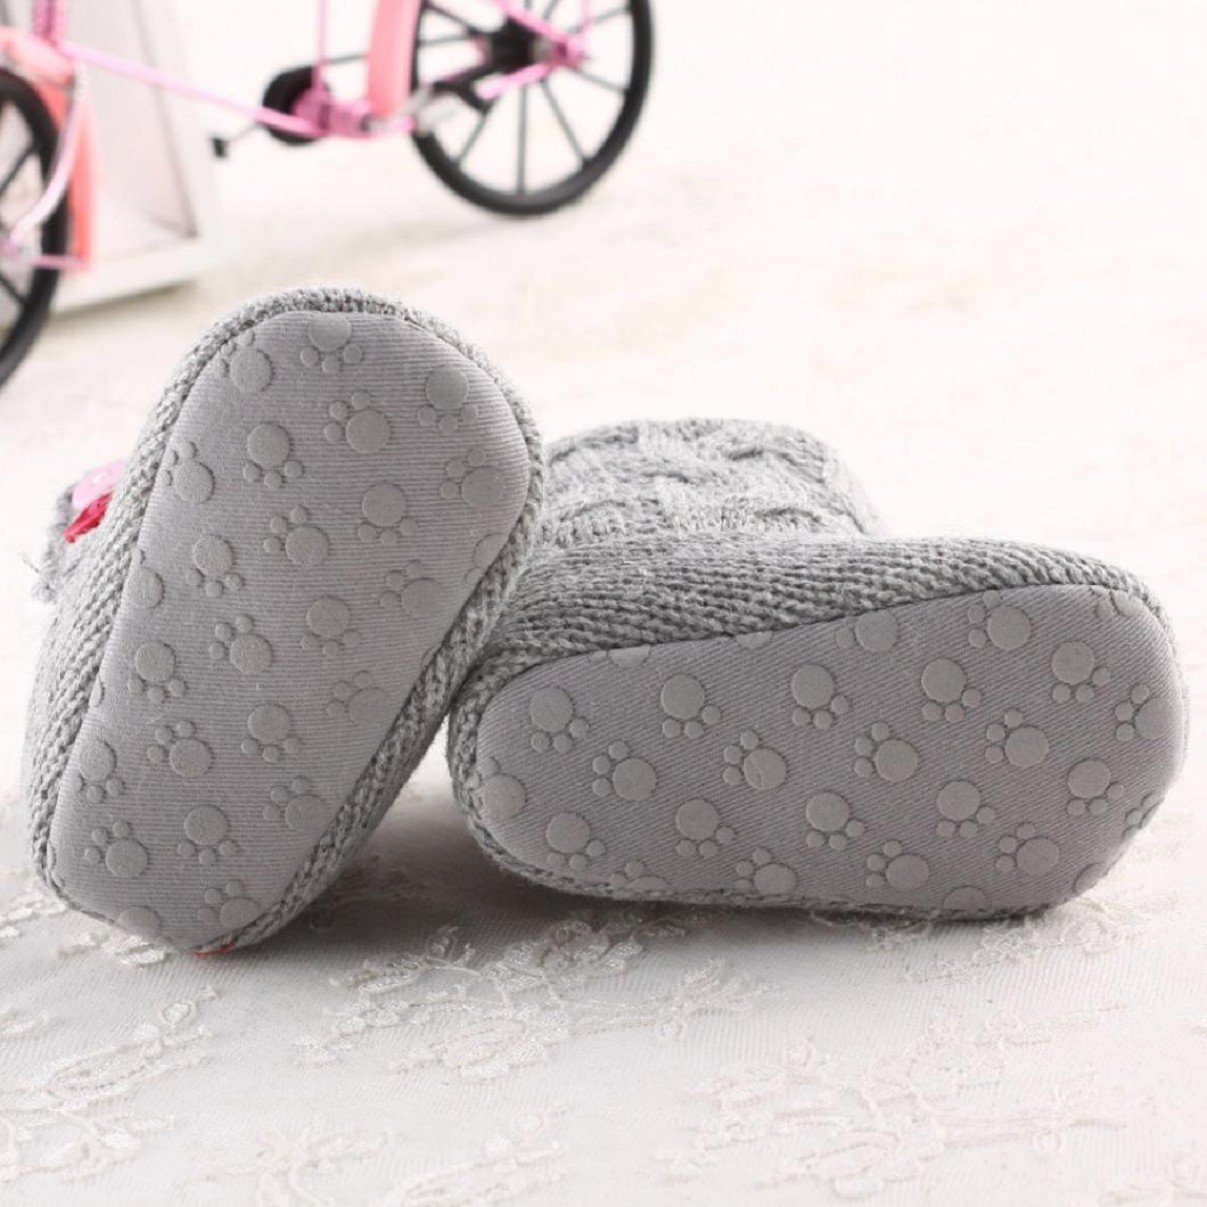 CMrtew Cute Baby Girls Keep Warm Soft Sole Snow Toddler Boots